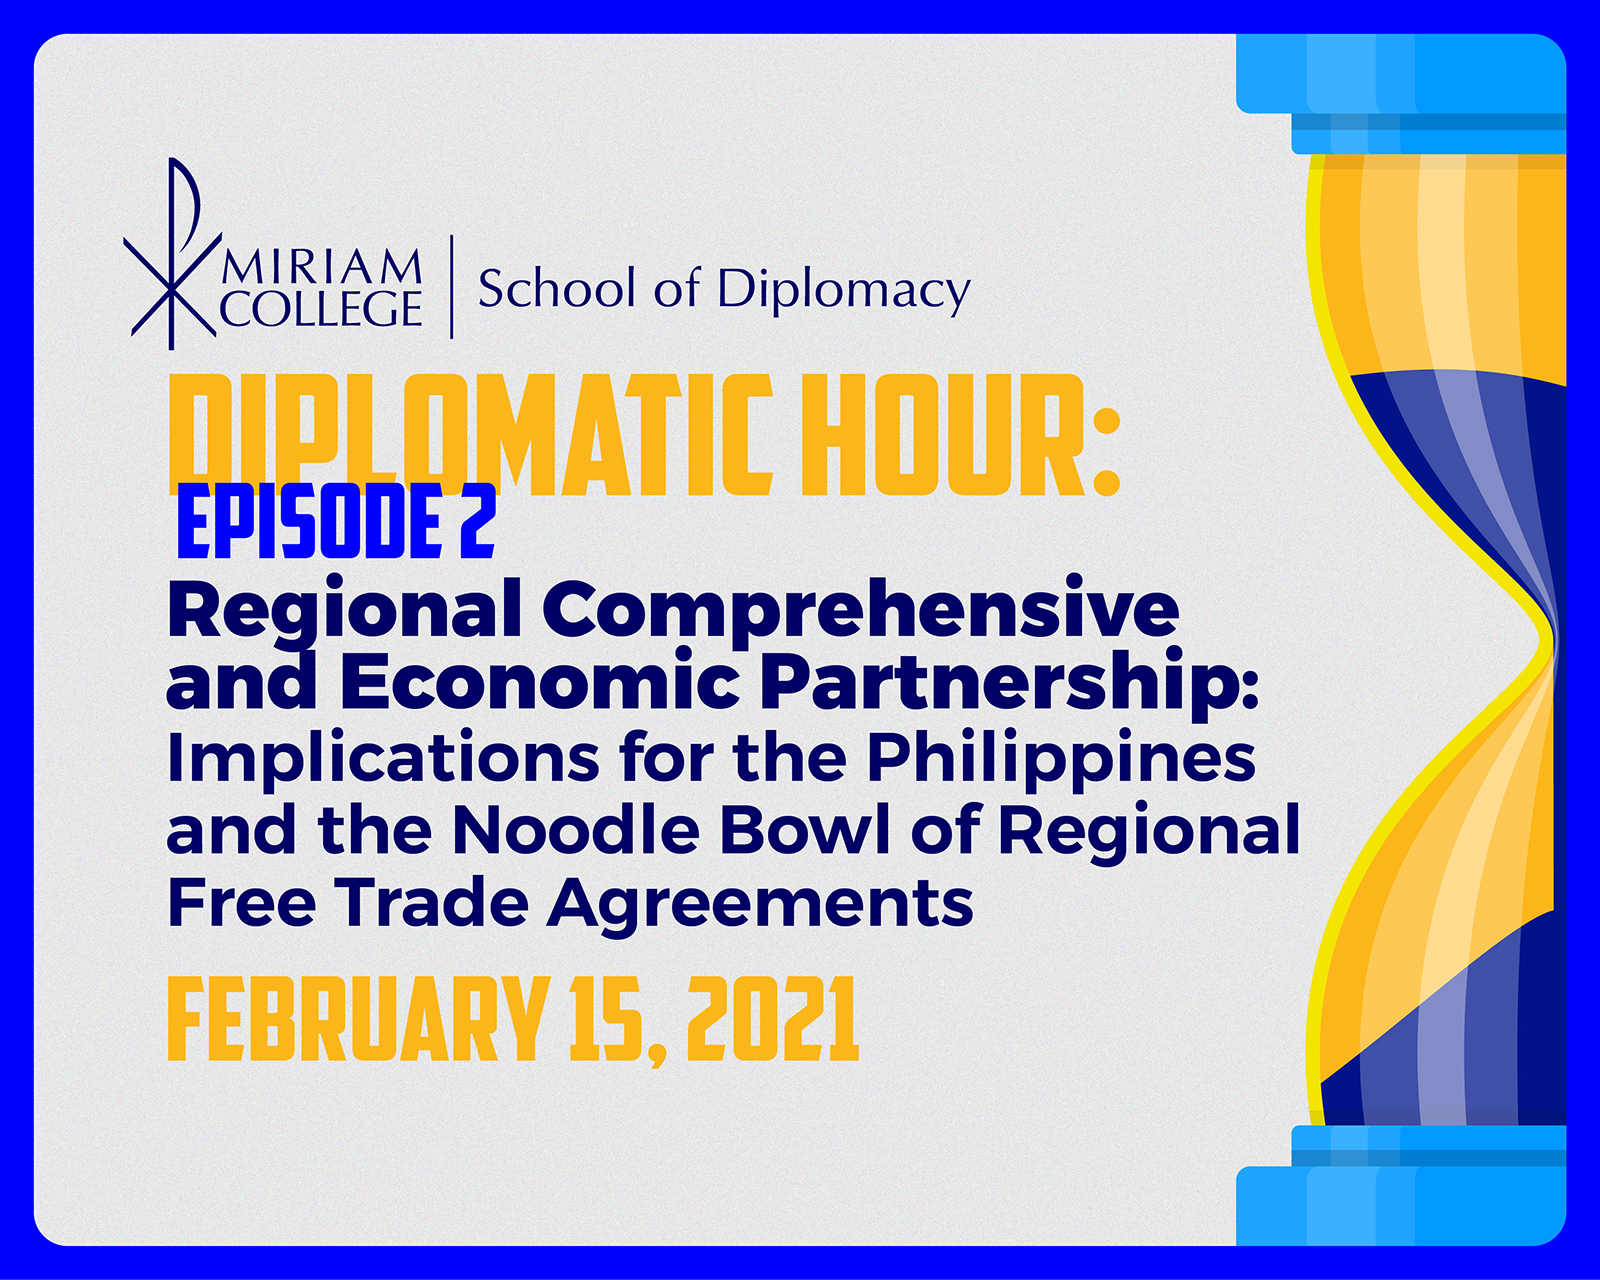 Diplomatic Hour (Episode 2)